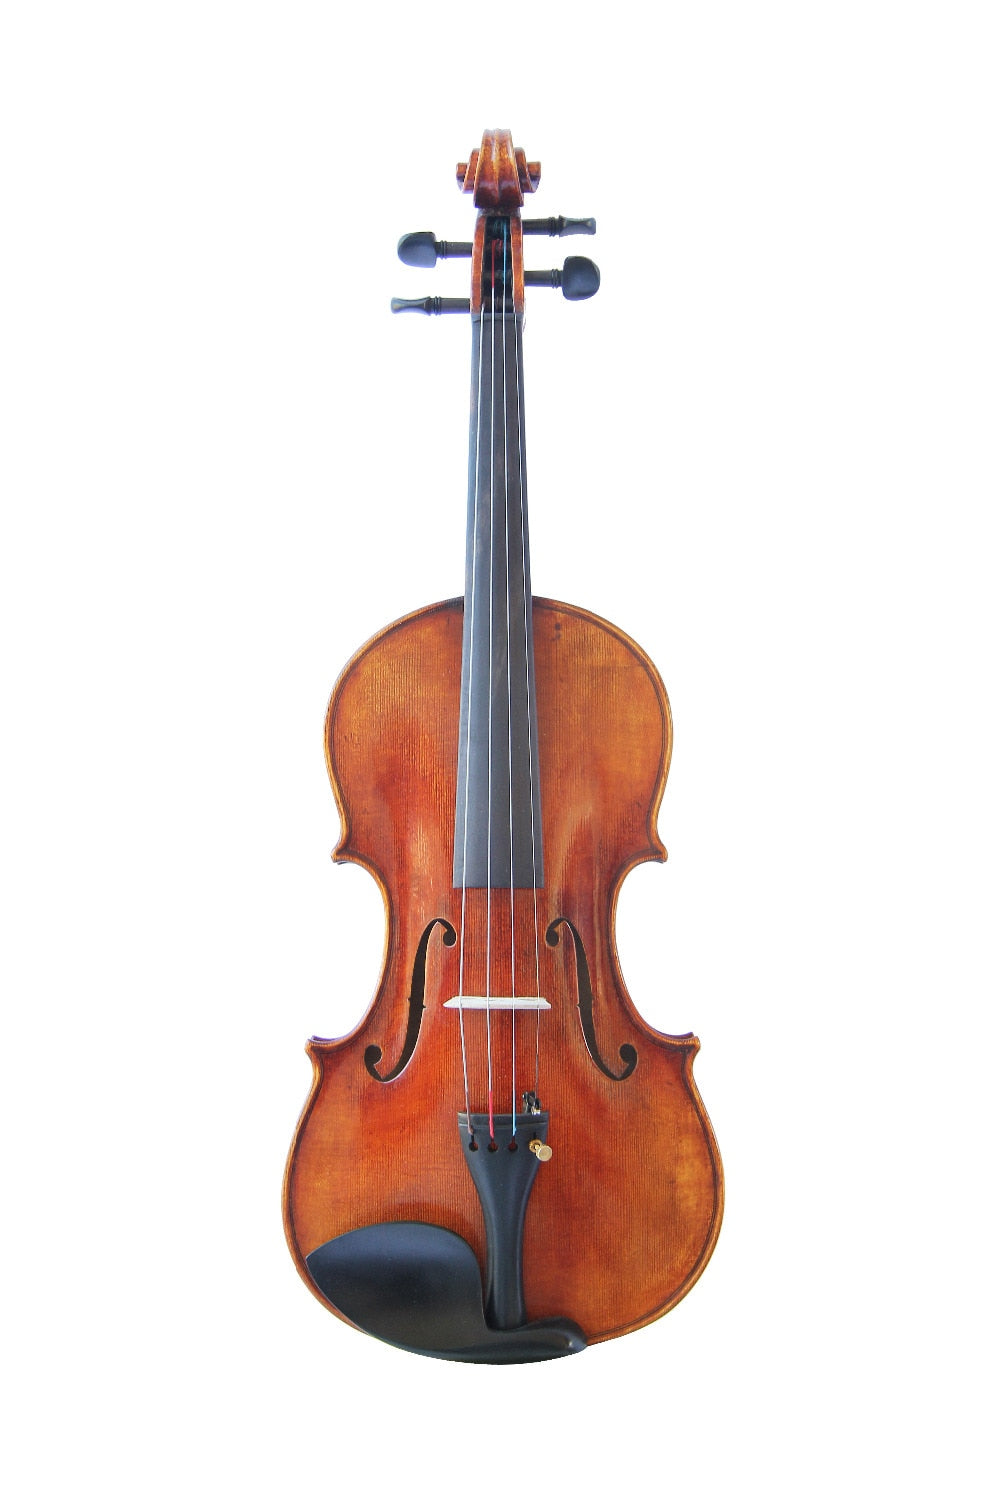 Copy Guiseppe Guarneri del Gesu II 1743 Violin FPVN02 100% Handmade Oil Varnish with Foam Case Carbon Fiber Bow - thegsnd